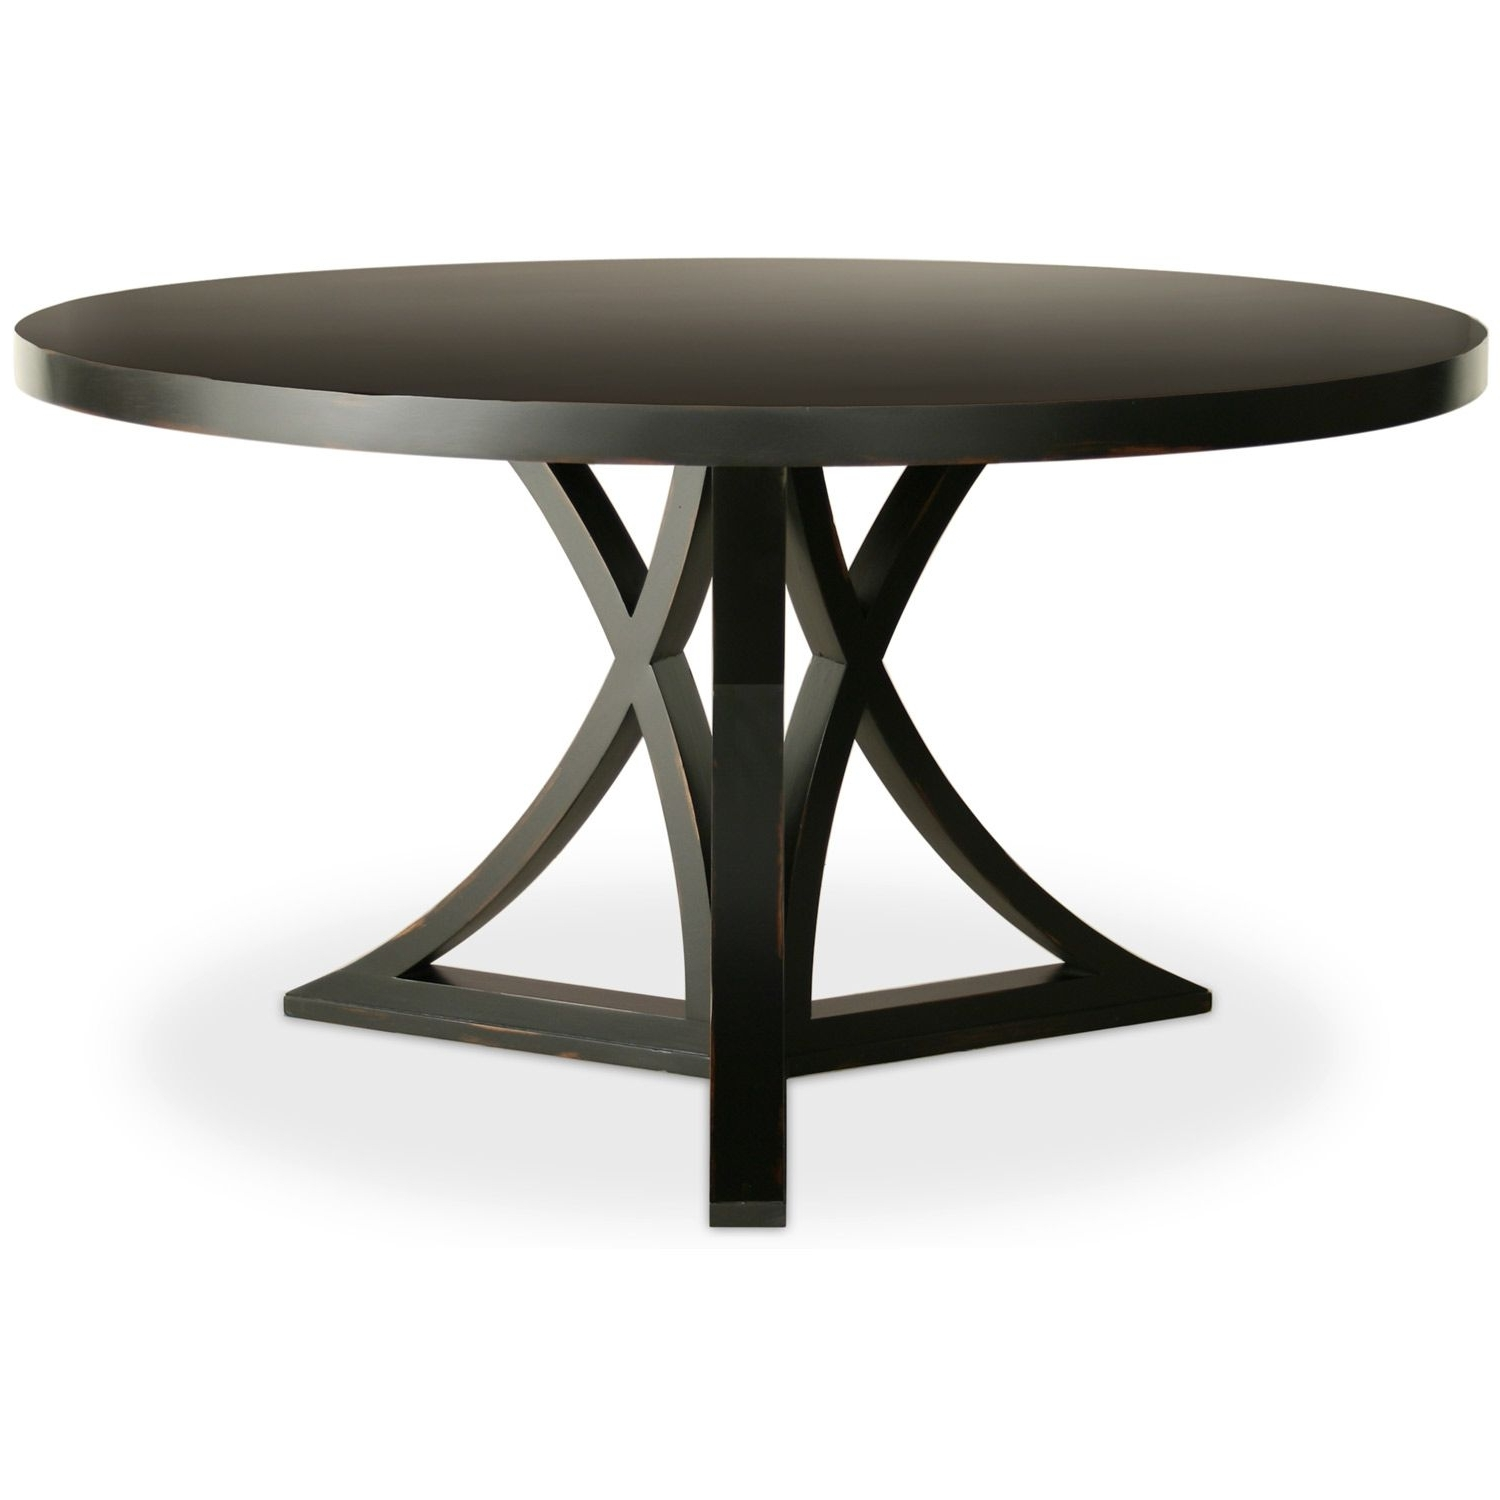 "Black Circular Dining Tables Inside 2017 60"" Round Dining Set With Leaf (Gallery 1 of 25)"